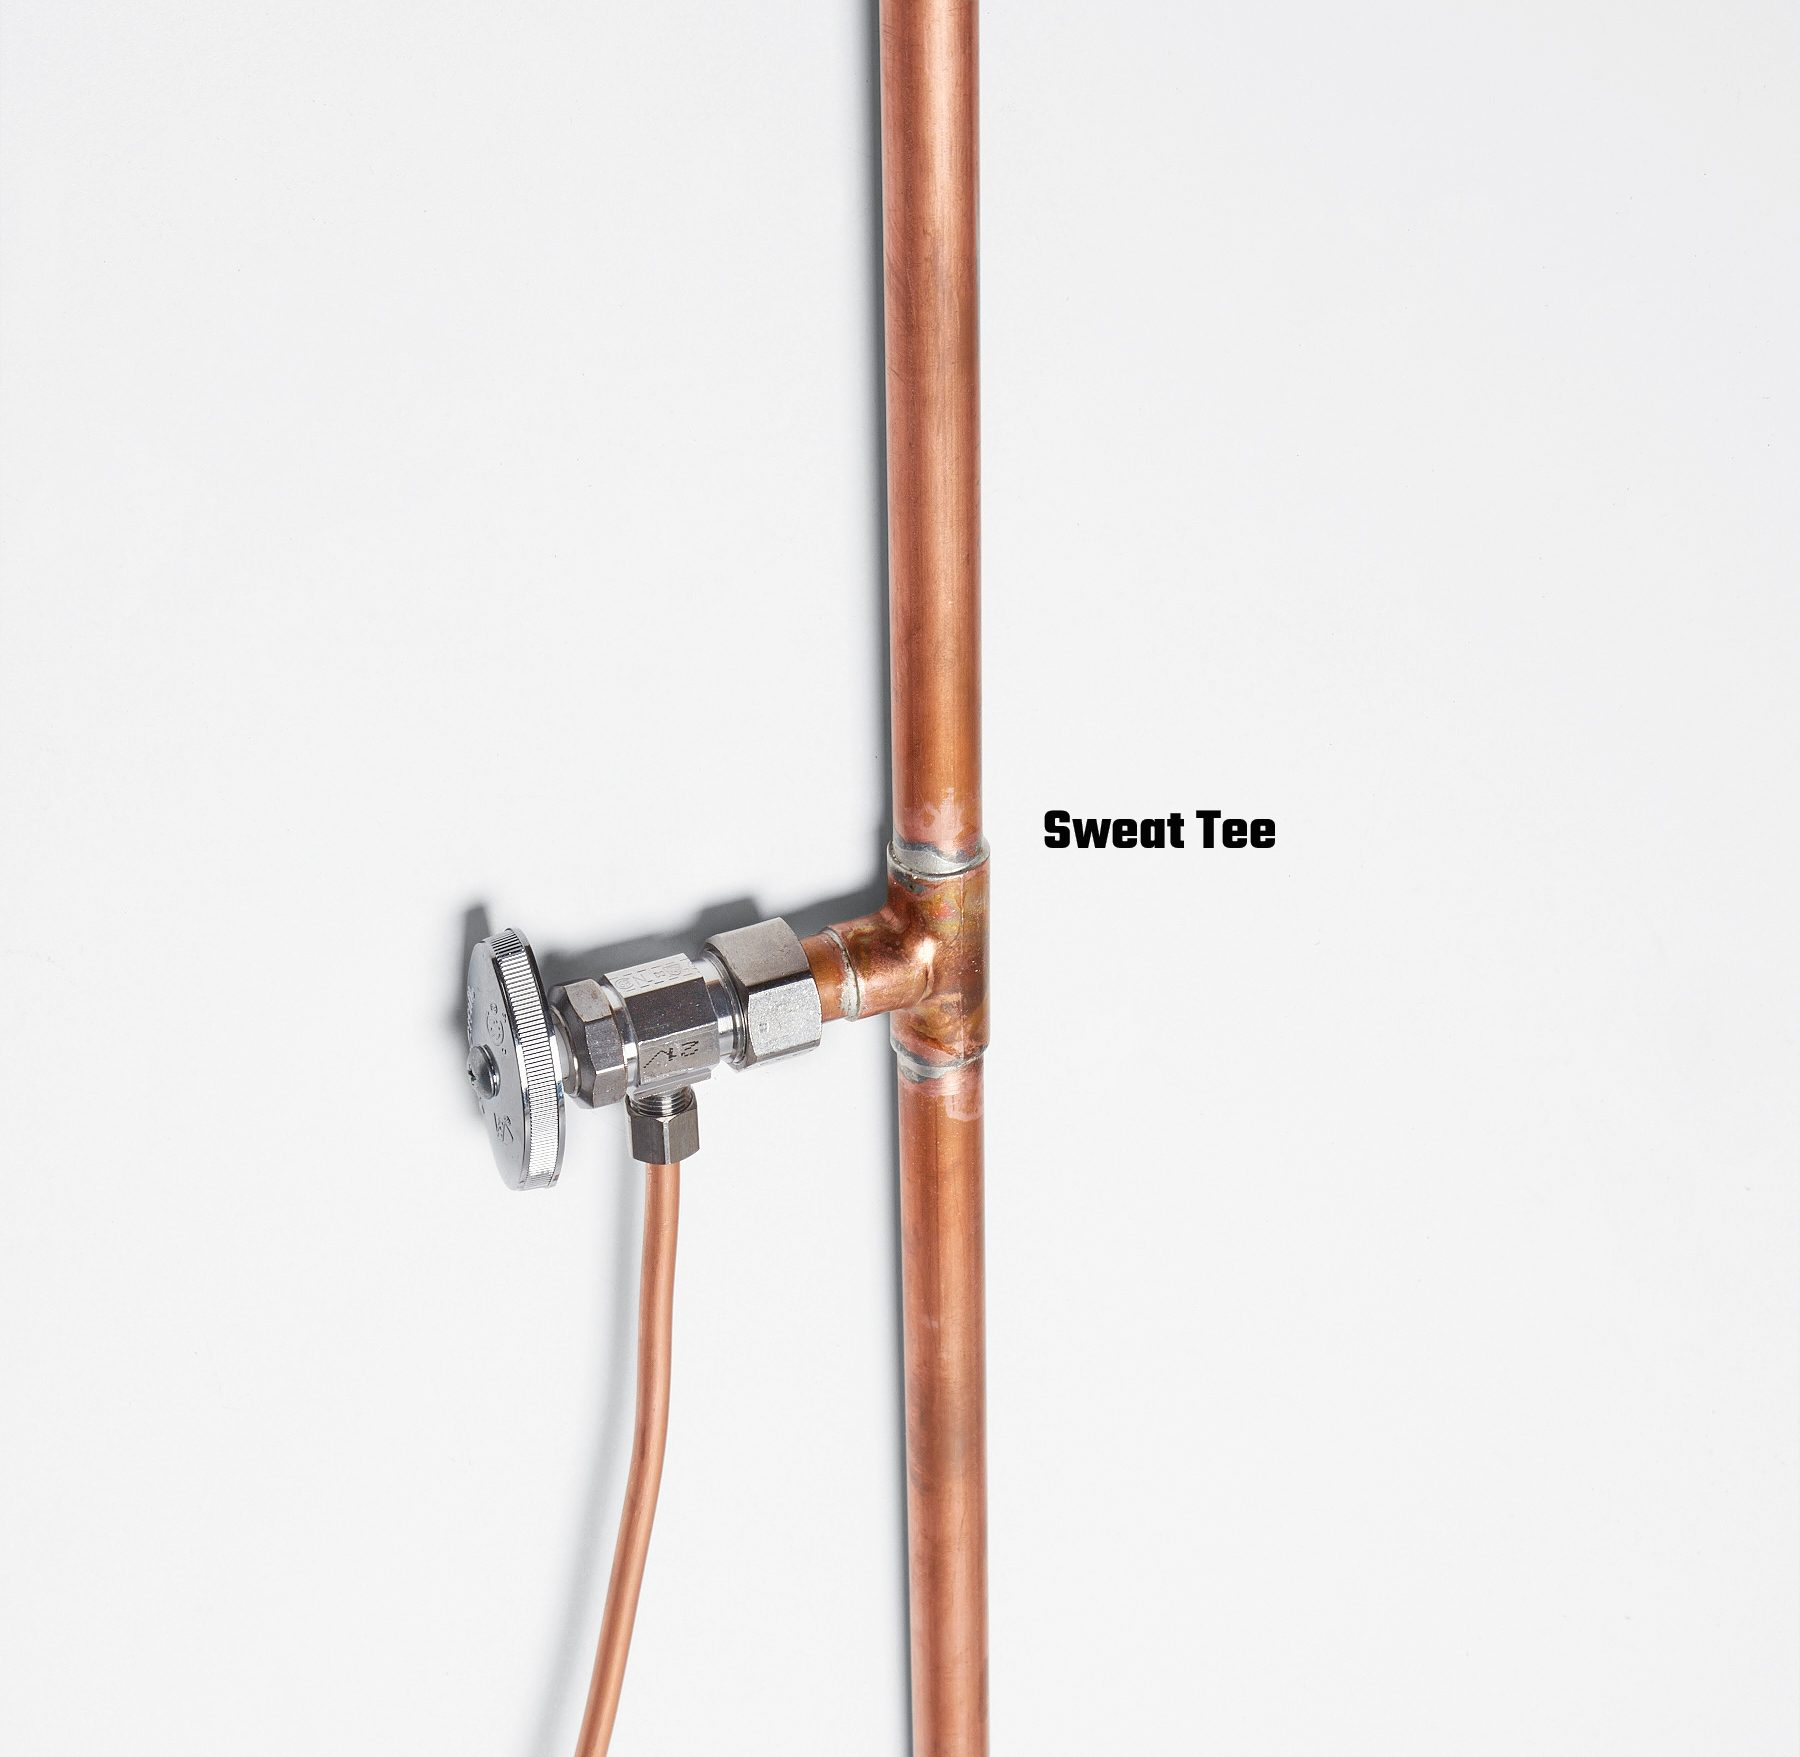 A Good Example of a Sweat Tee   Construction Pro Tips